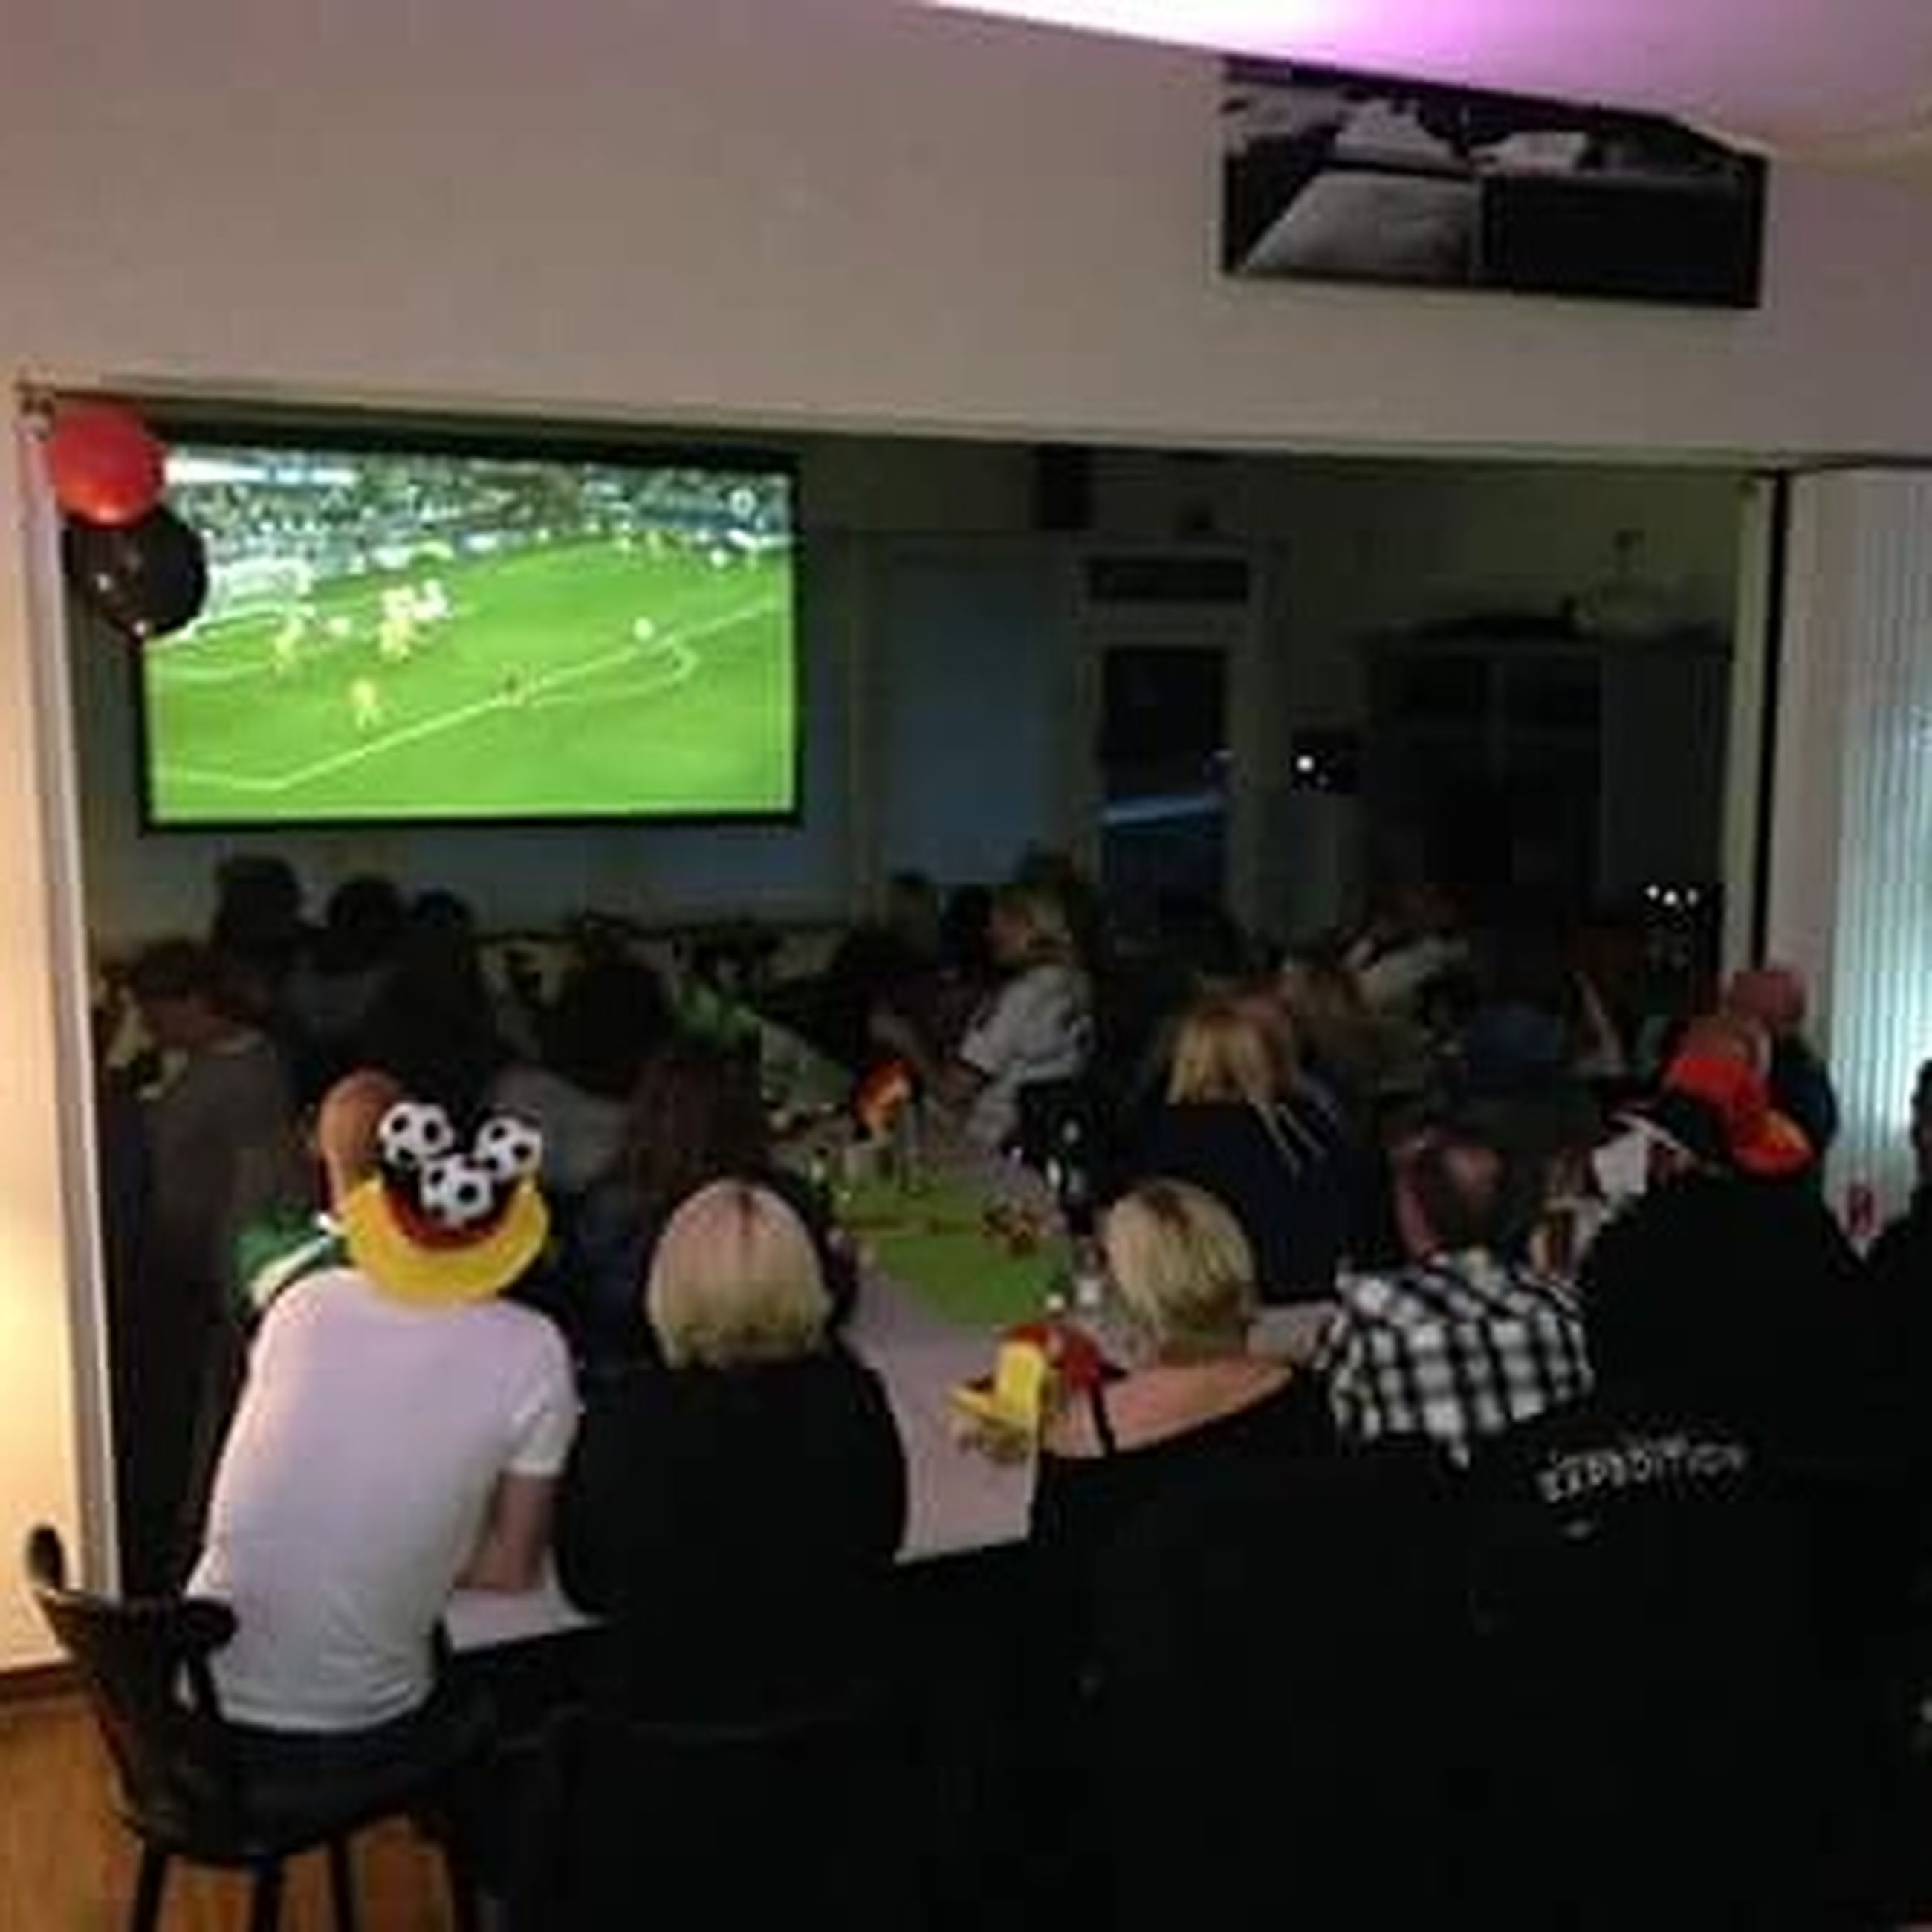 lifestyles, indoors, leisure activity, togetherness, men, person, casual clothing, celebration, sitting, holding, table, food and drink, bonding, enjoyment, friendship, large group of people, waist up, standing